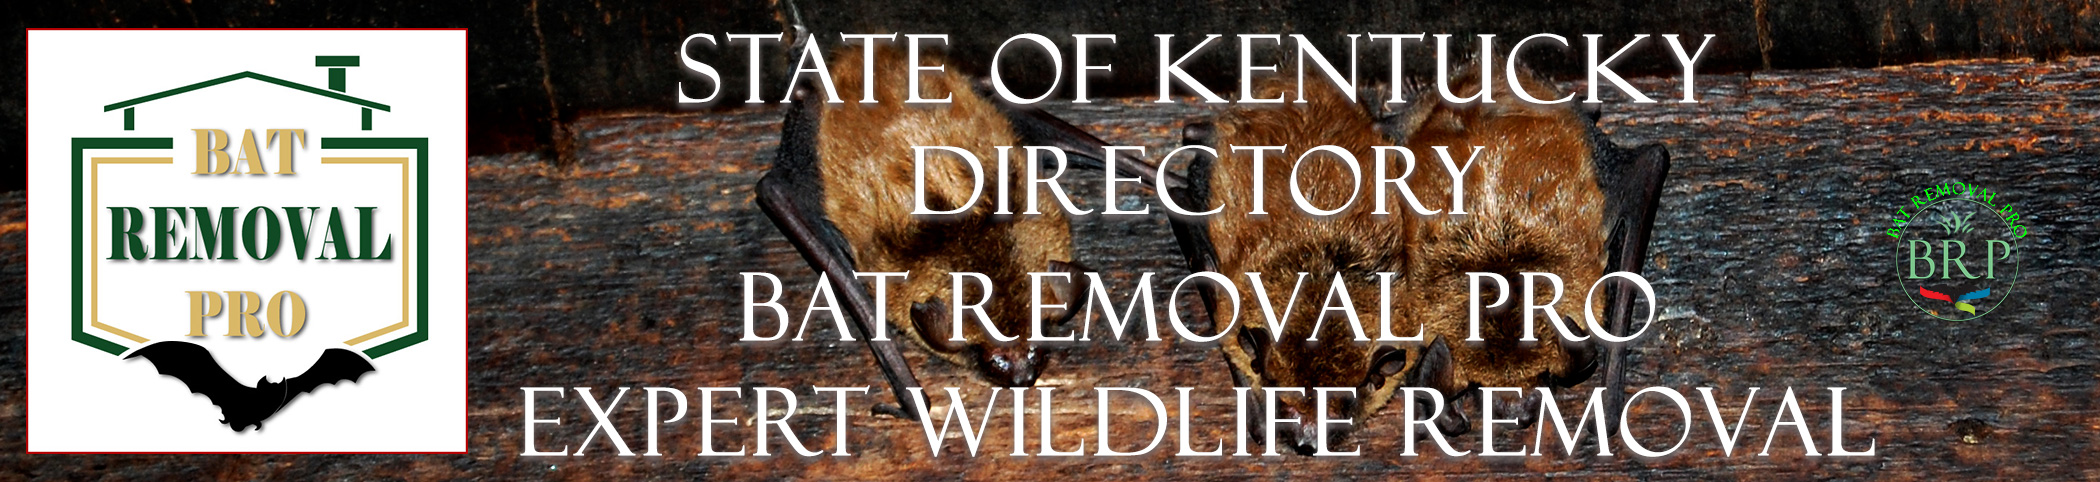 kentucky-bat-removal-at-bat-removal-pro-header-image